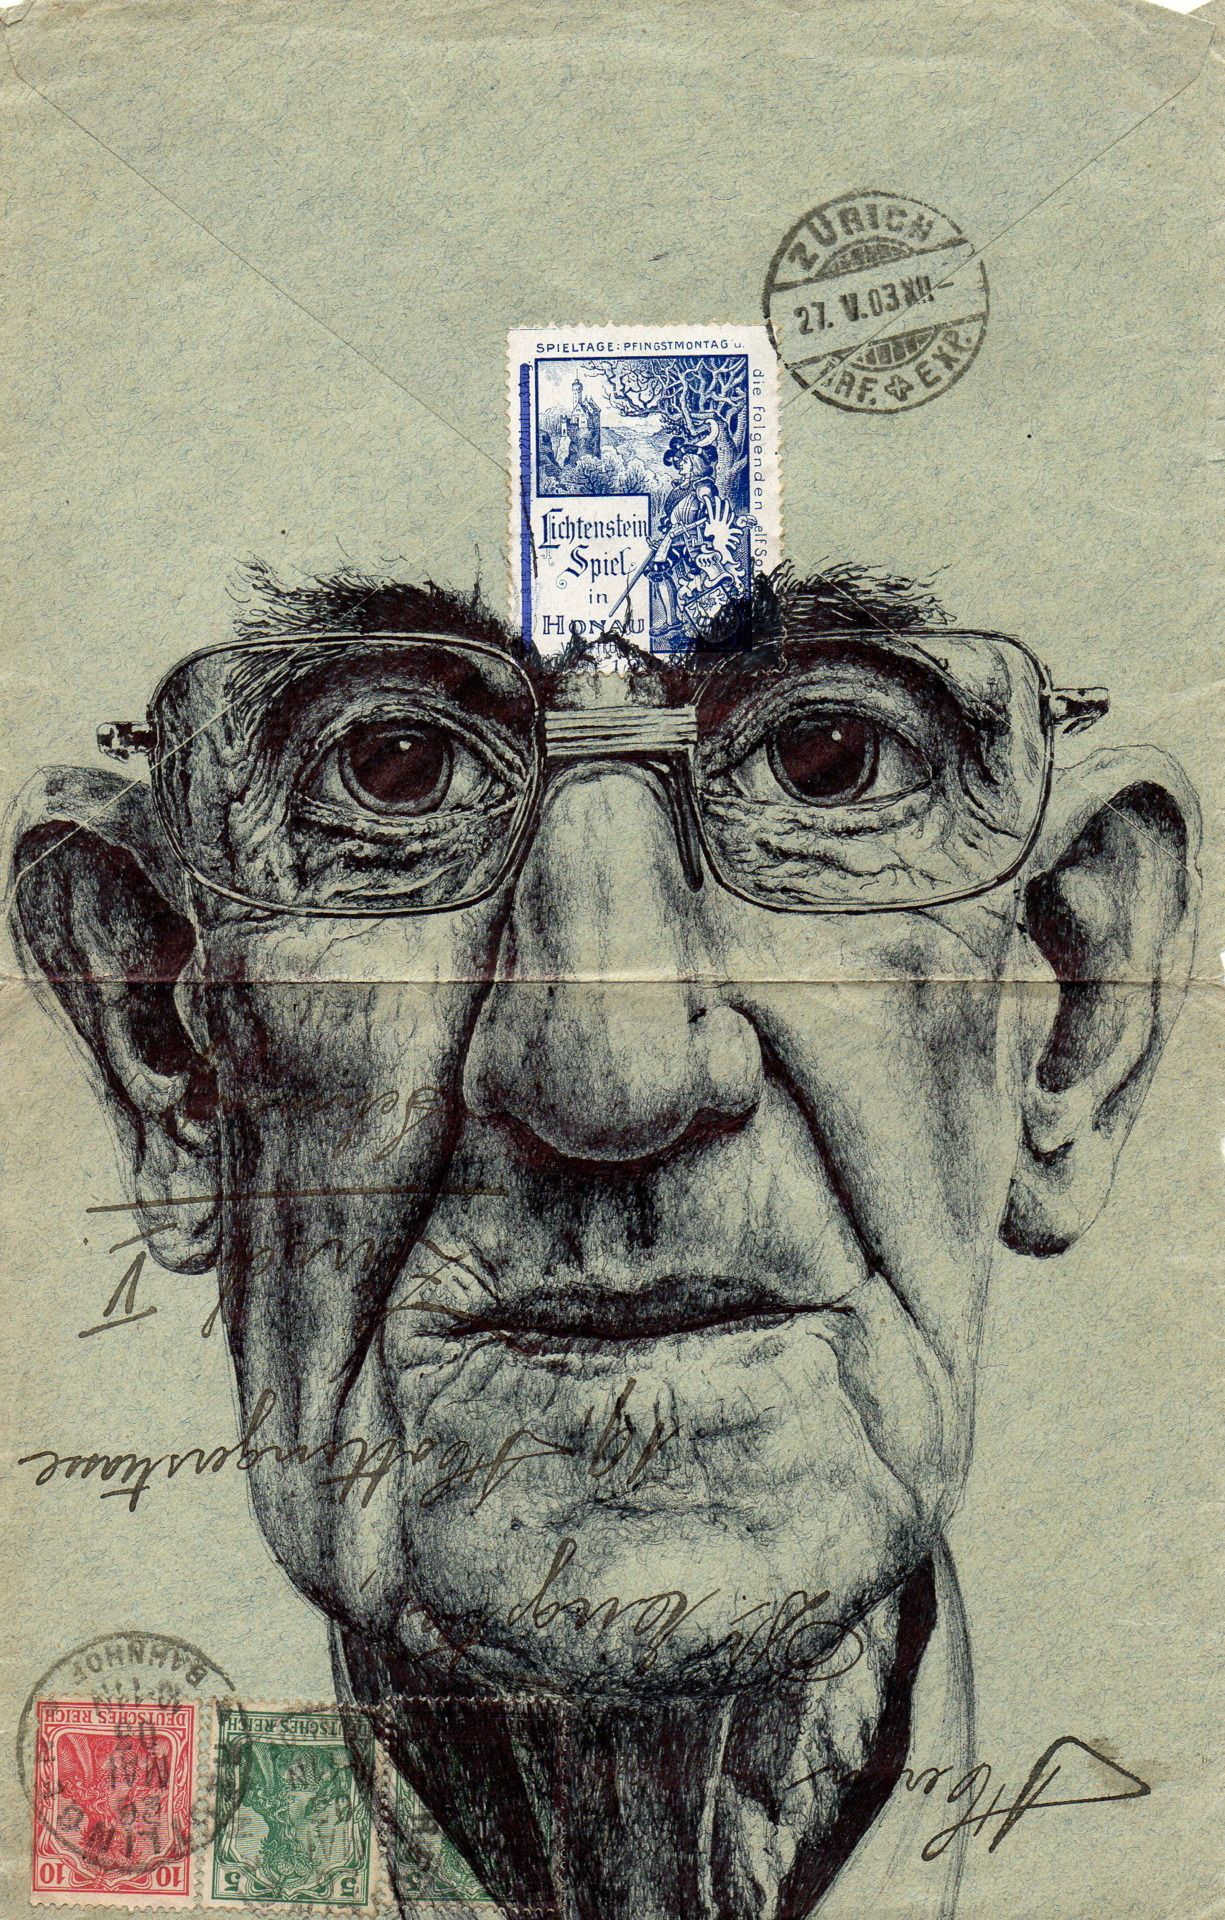 Powell executes each drawing with a standard bic biro pen using stamped and faded envelopes that traversed the european postal system more than